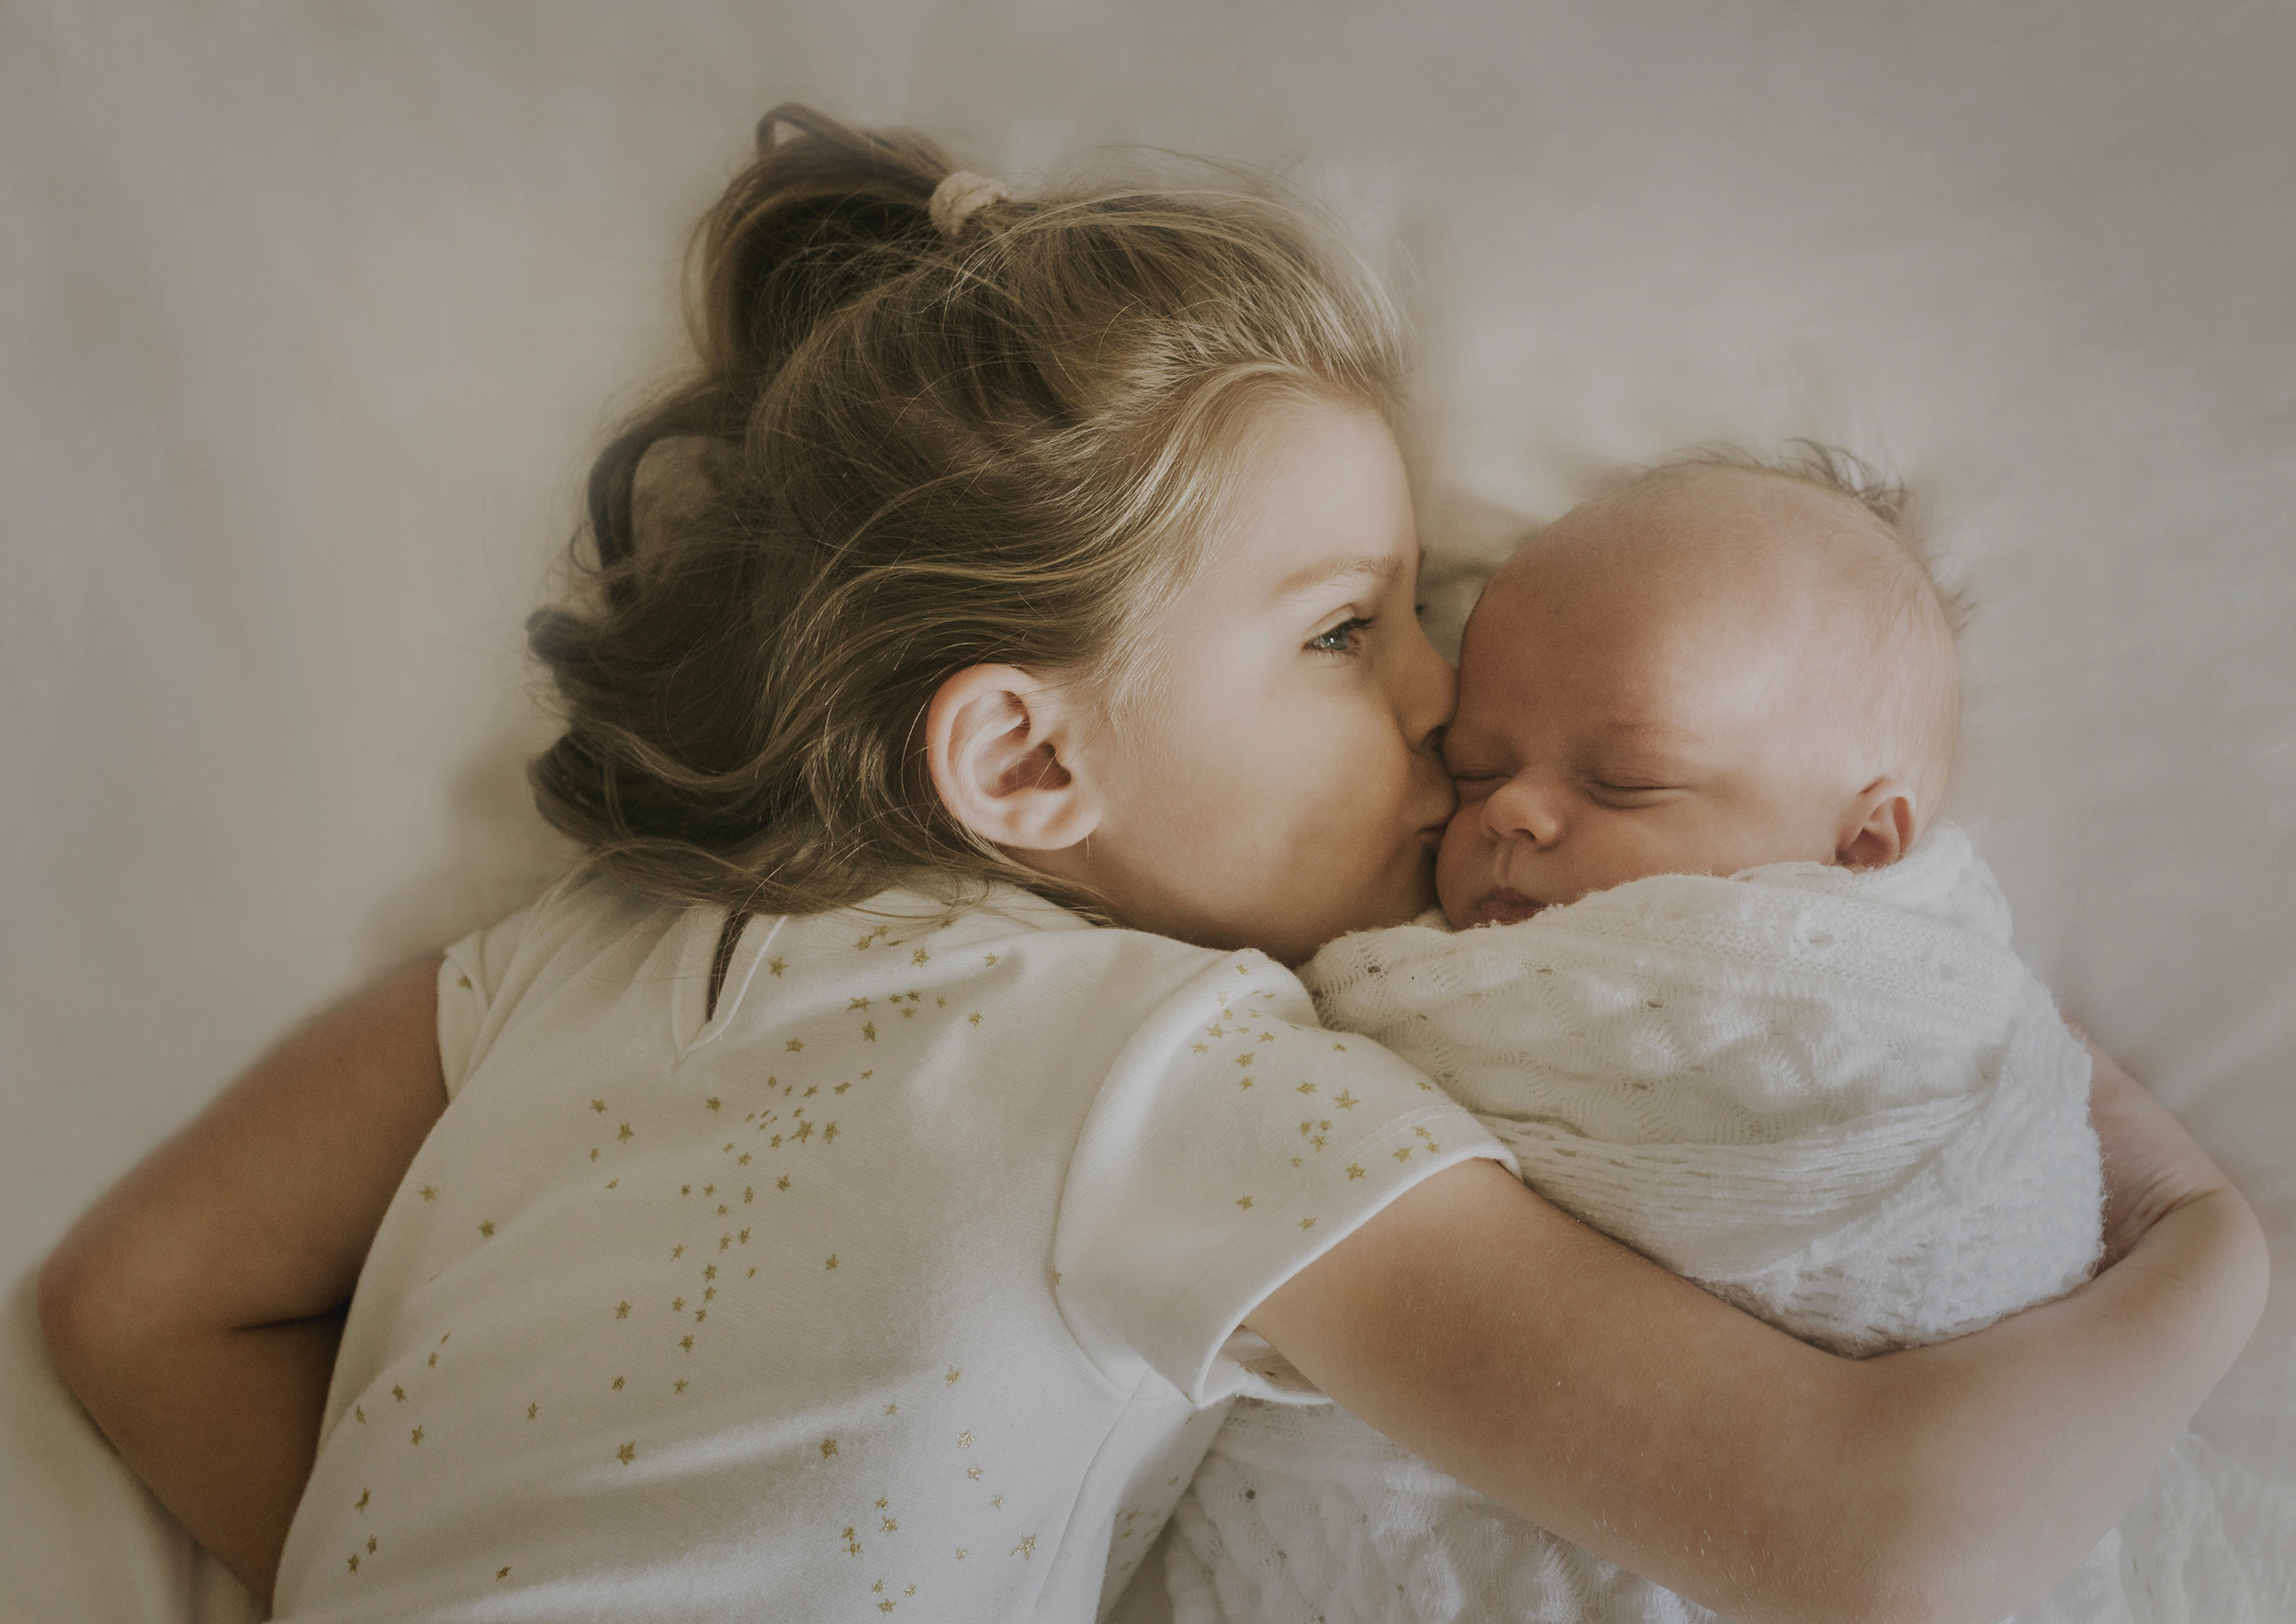 Kisses for her newborn baby brother